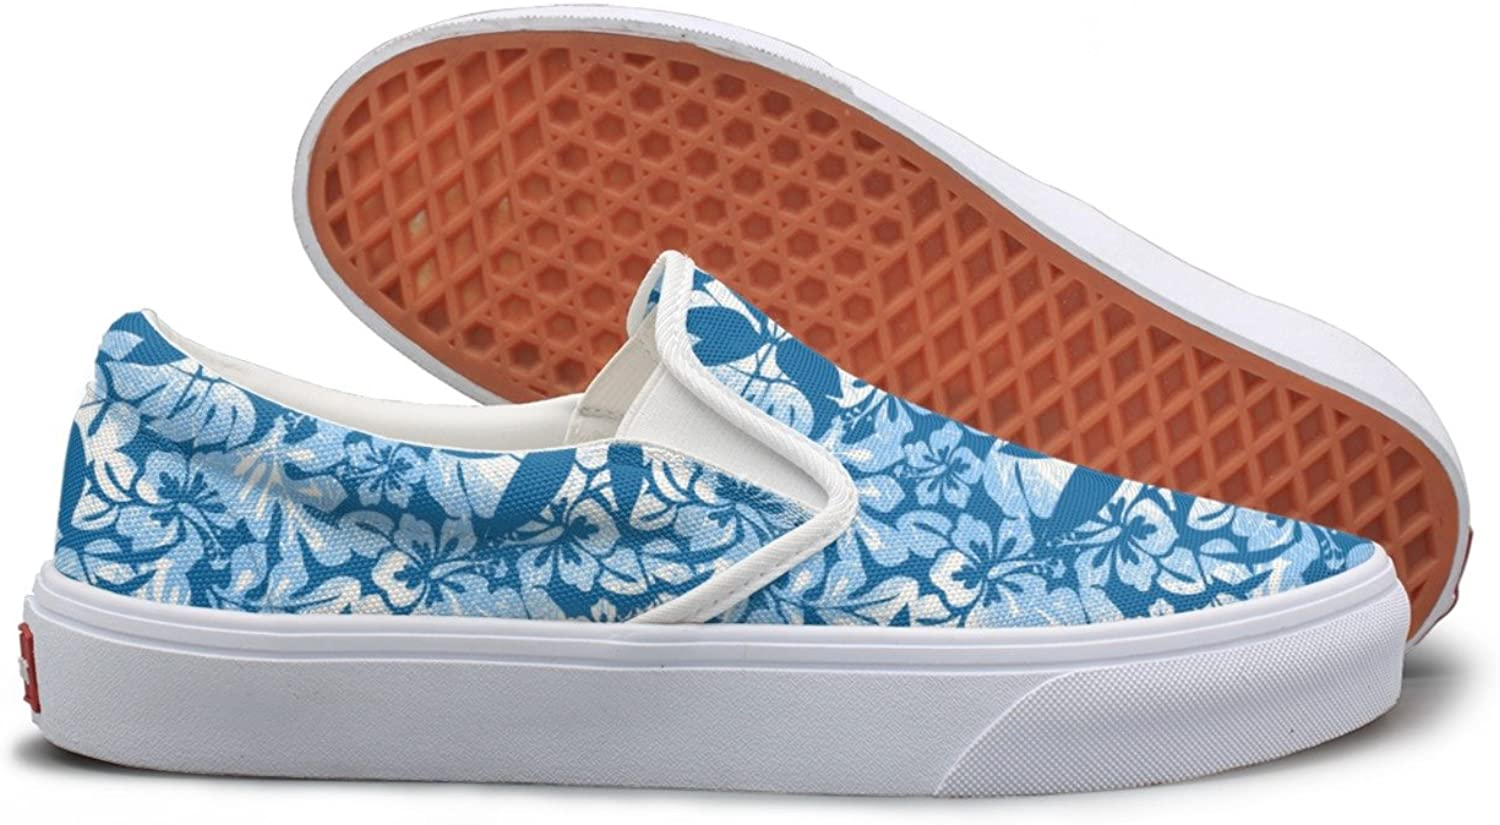 bluee Tropical Casual Sneakers For Women Slip On